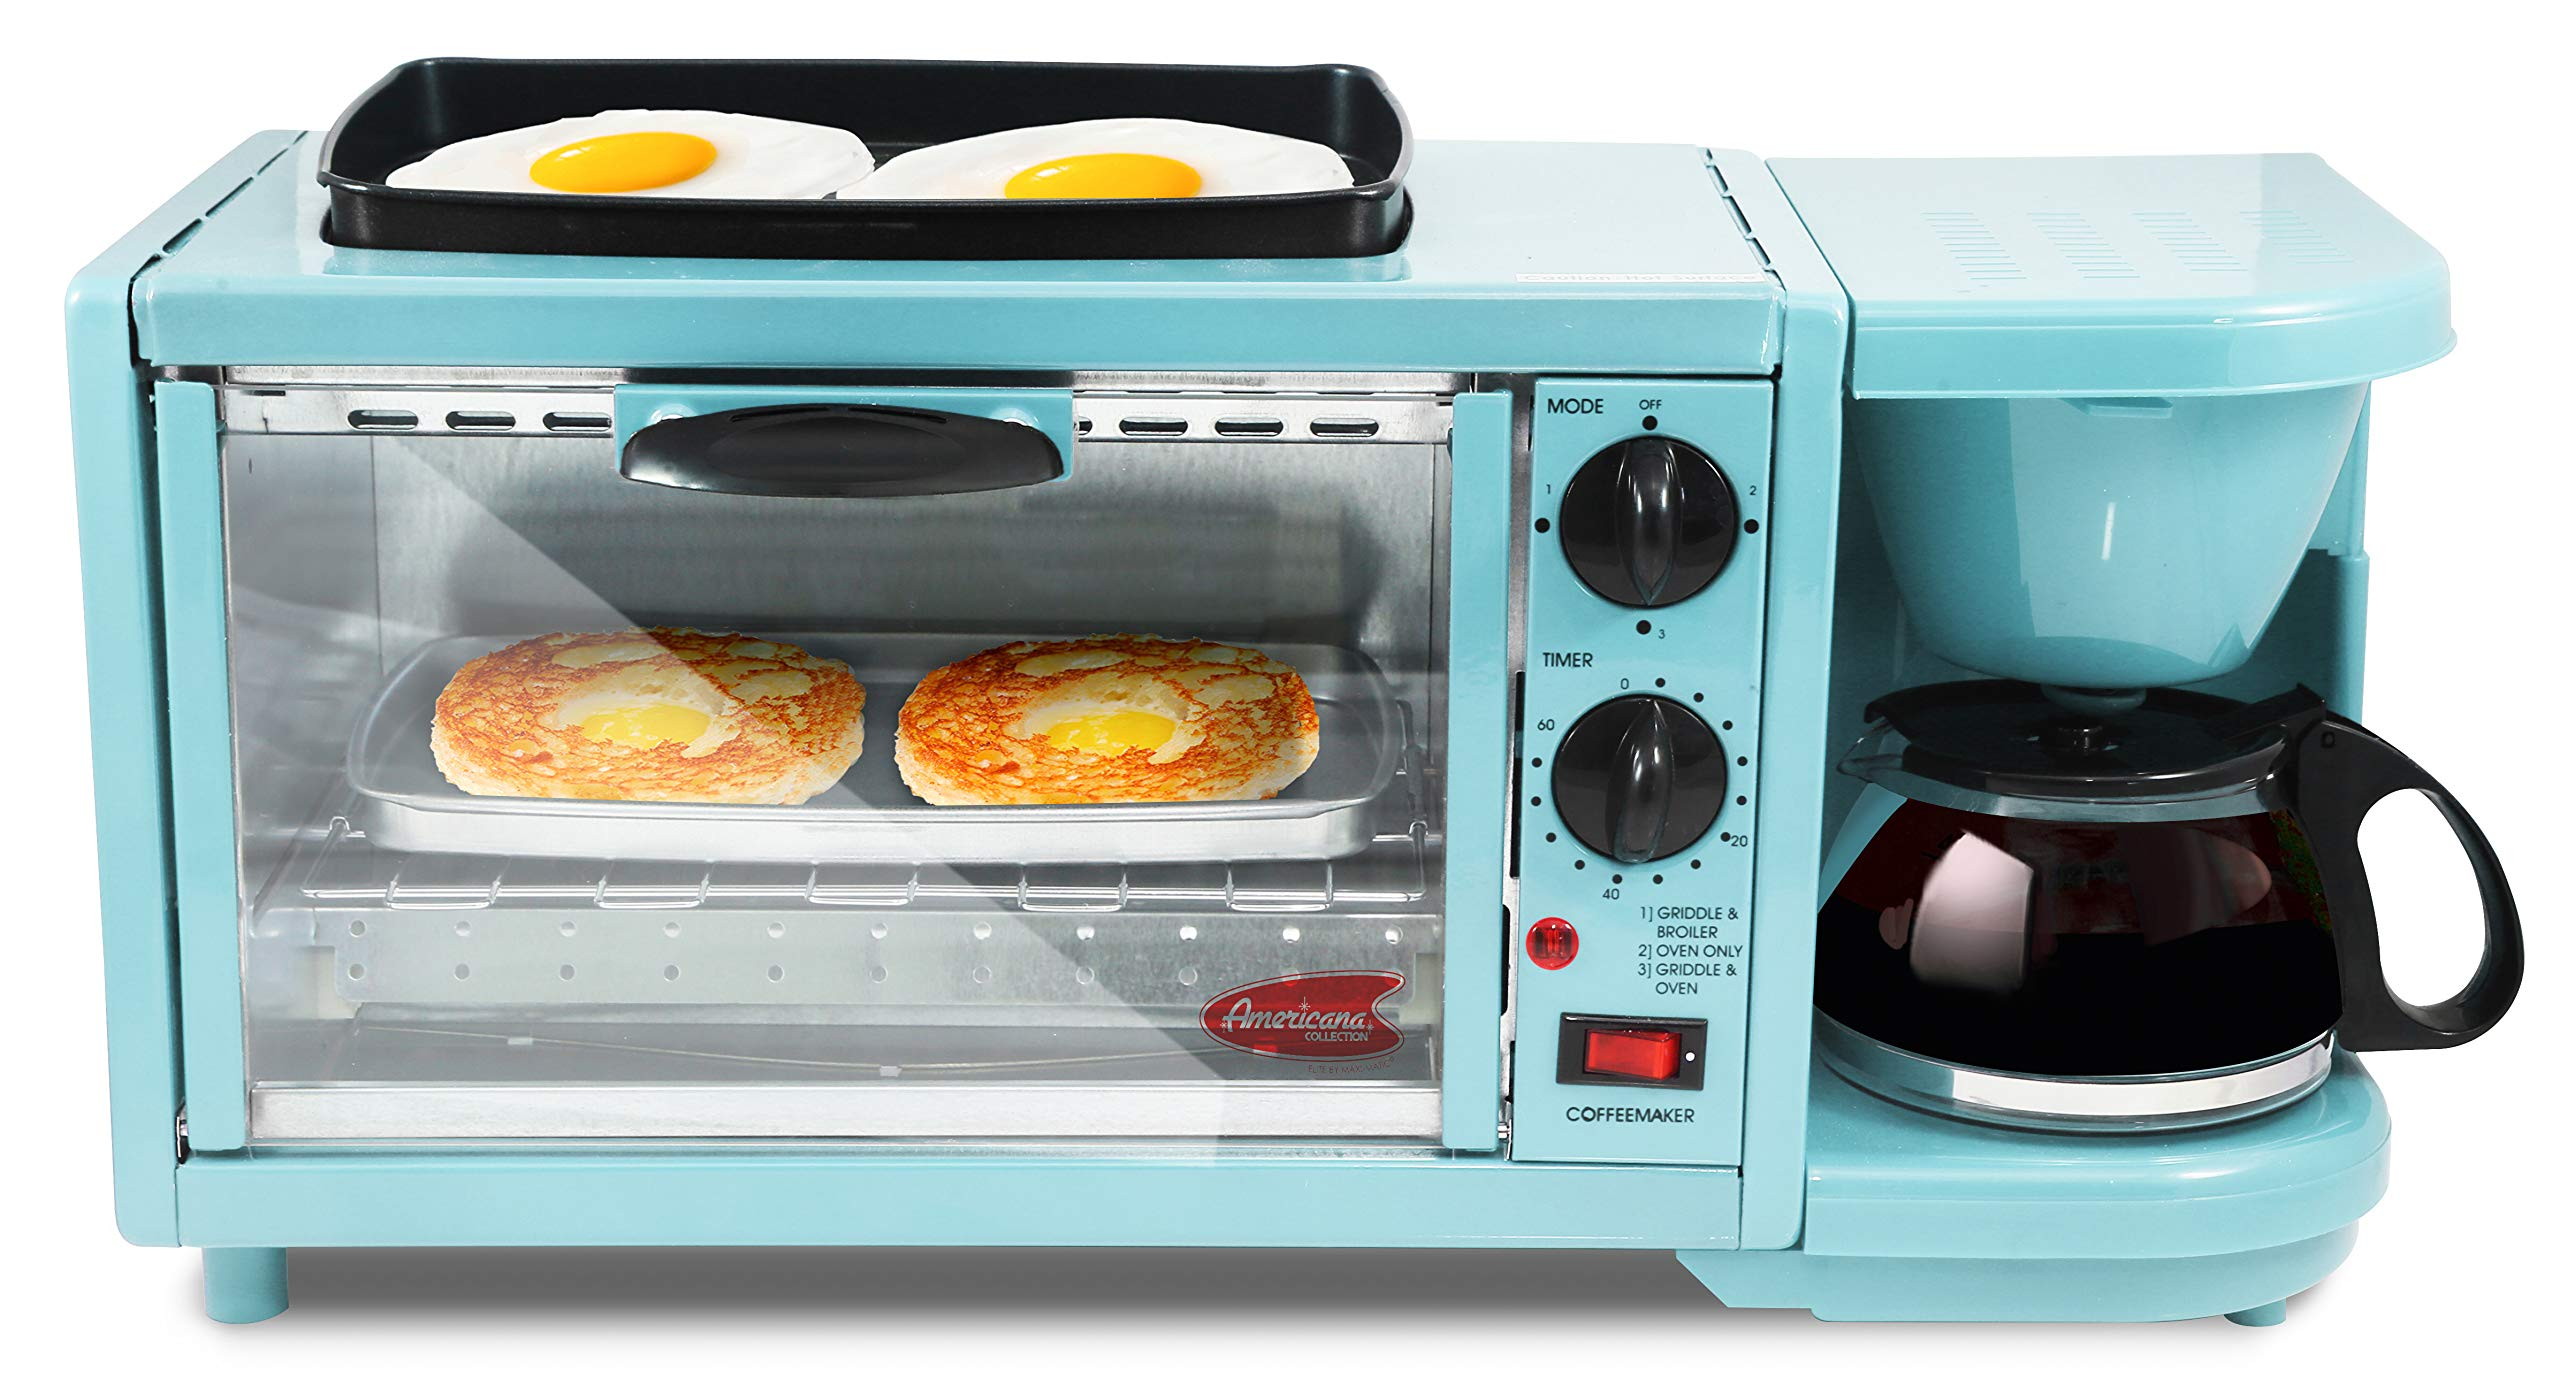 EBK-300BL Maxi-Matic 3-in-1 Multifunction Breakfast Center W/ Toaster Oven, Griddle & Coffee Maker, Blue by Maxi-Matic